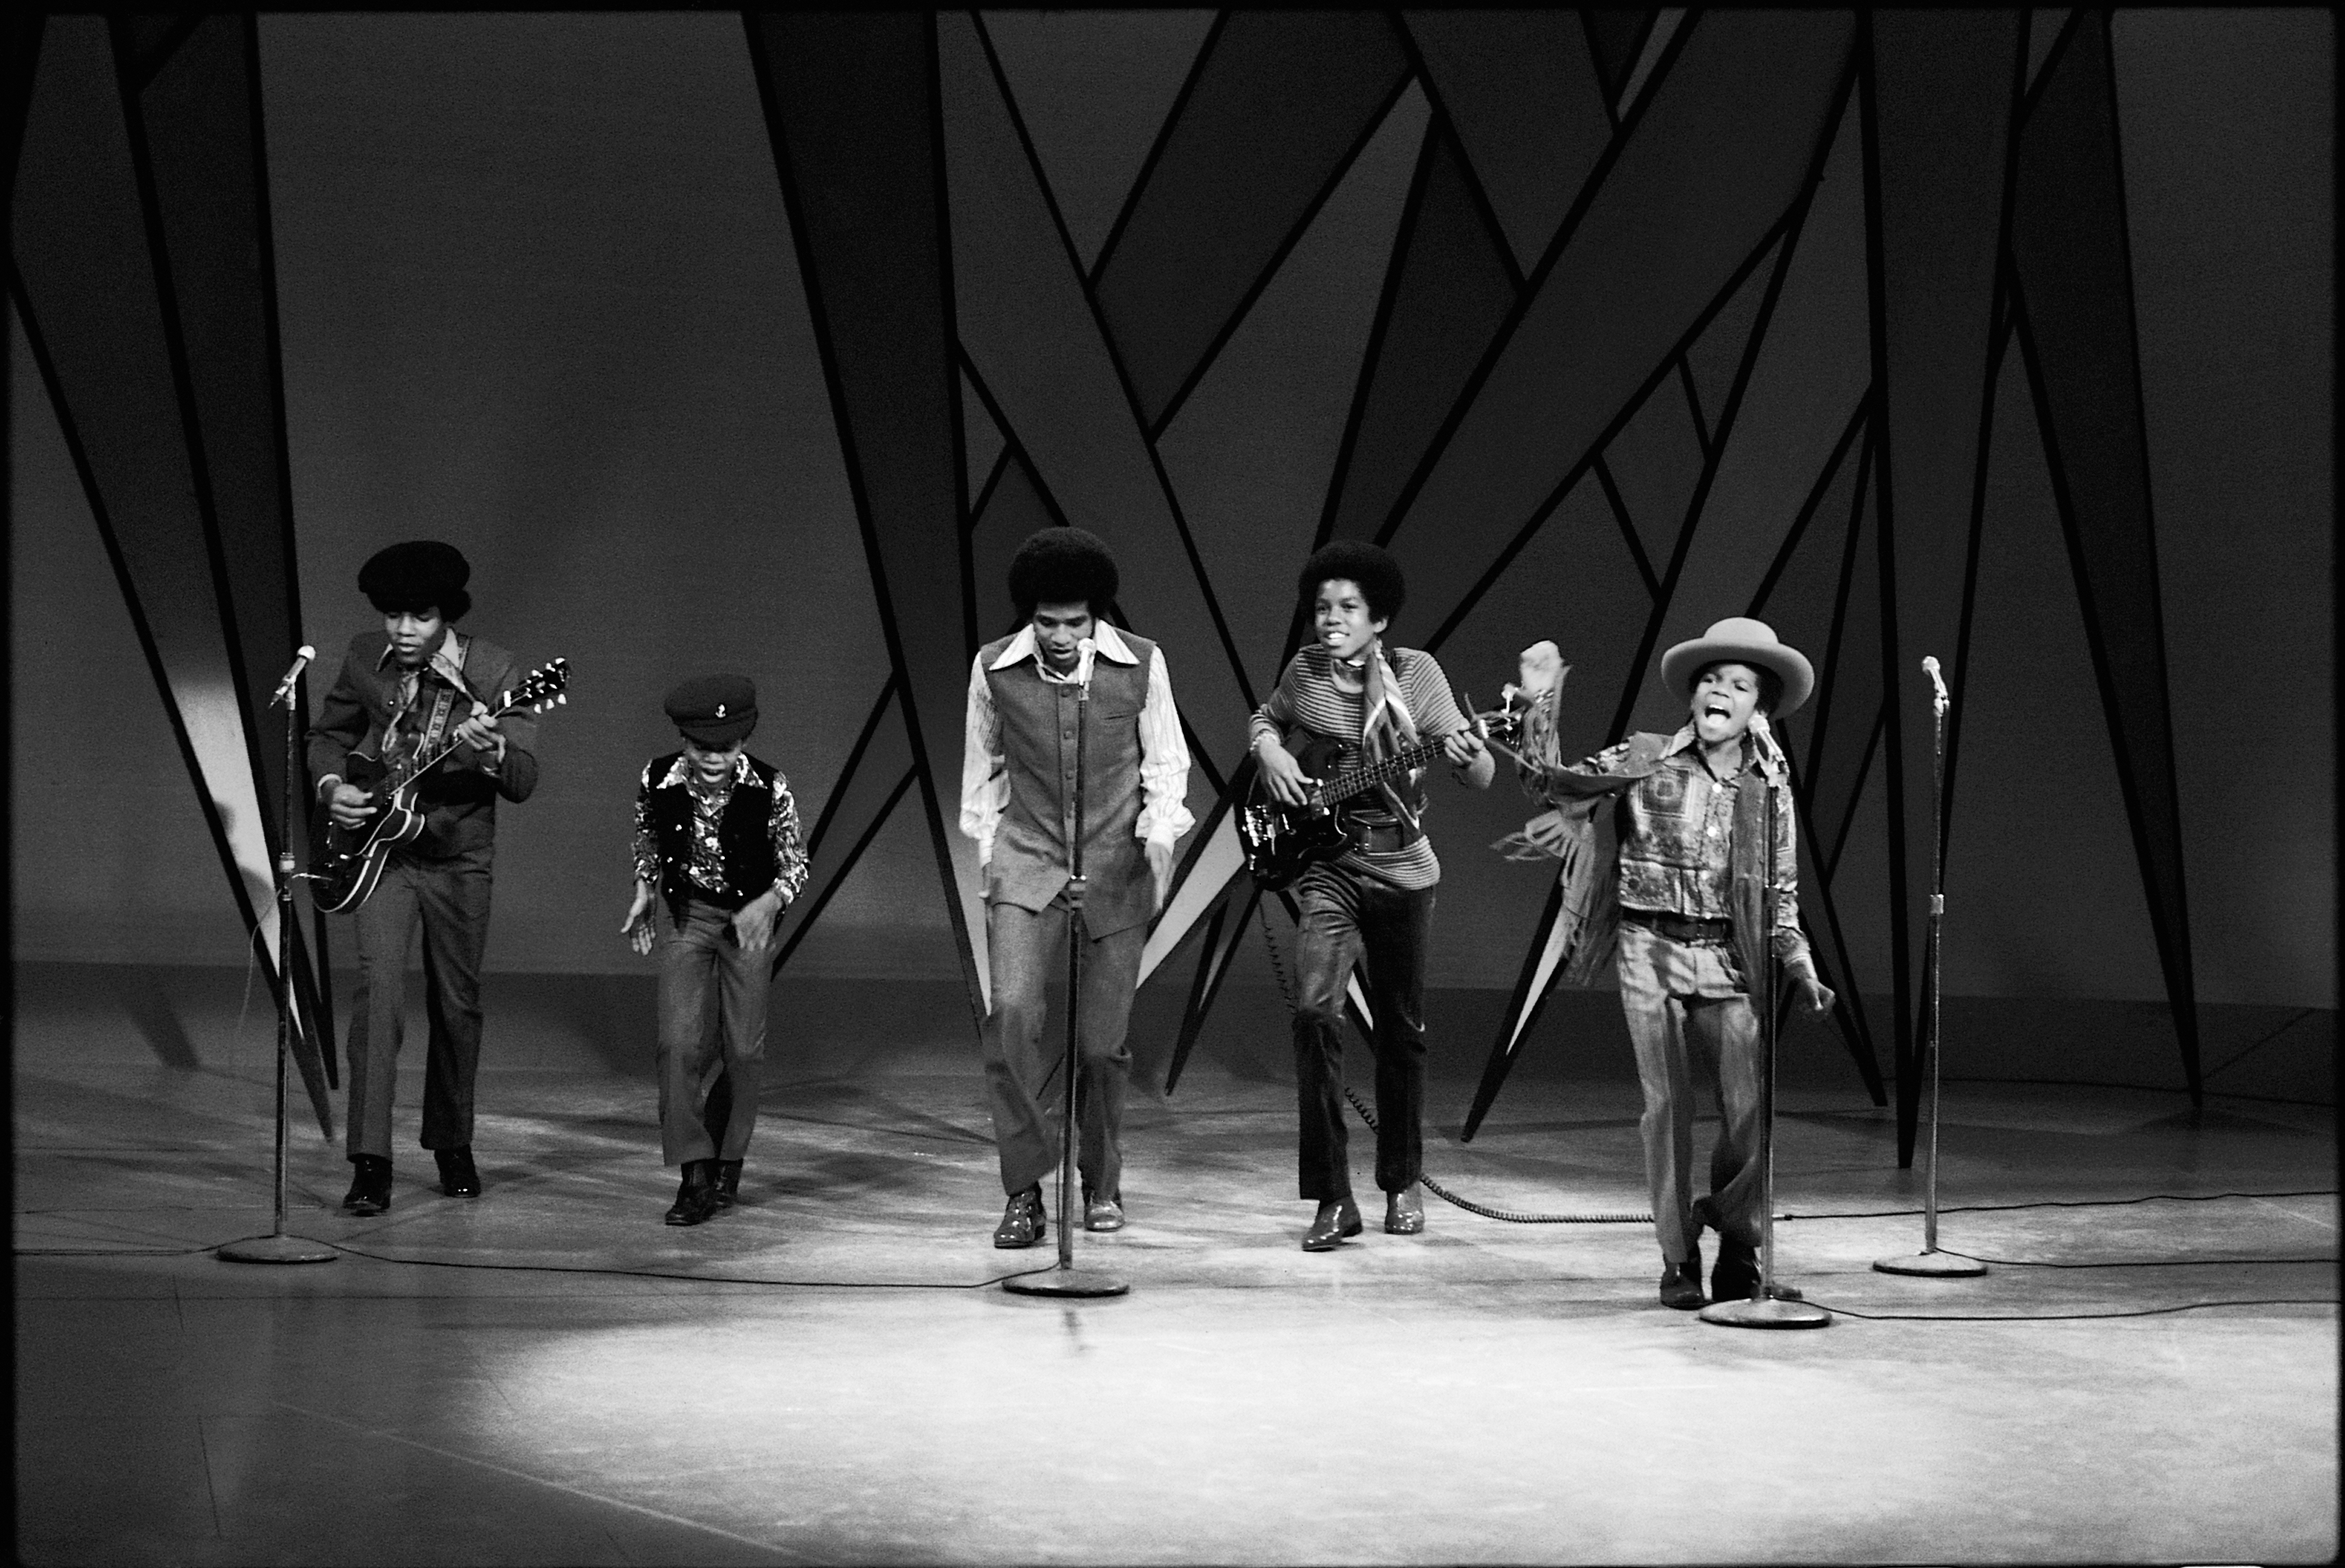 The Jackson 5 make their first appearance on The Ed Sullivan Show in NYC, December 14 1969. (Photo via Motown Records Archives via EMI Archive Trust and Universal Music Group. Used with permission)